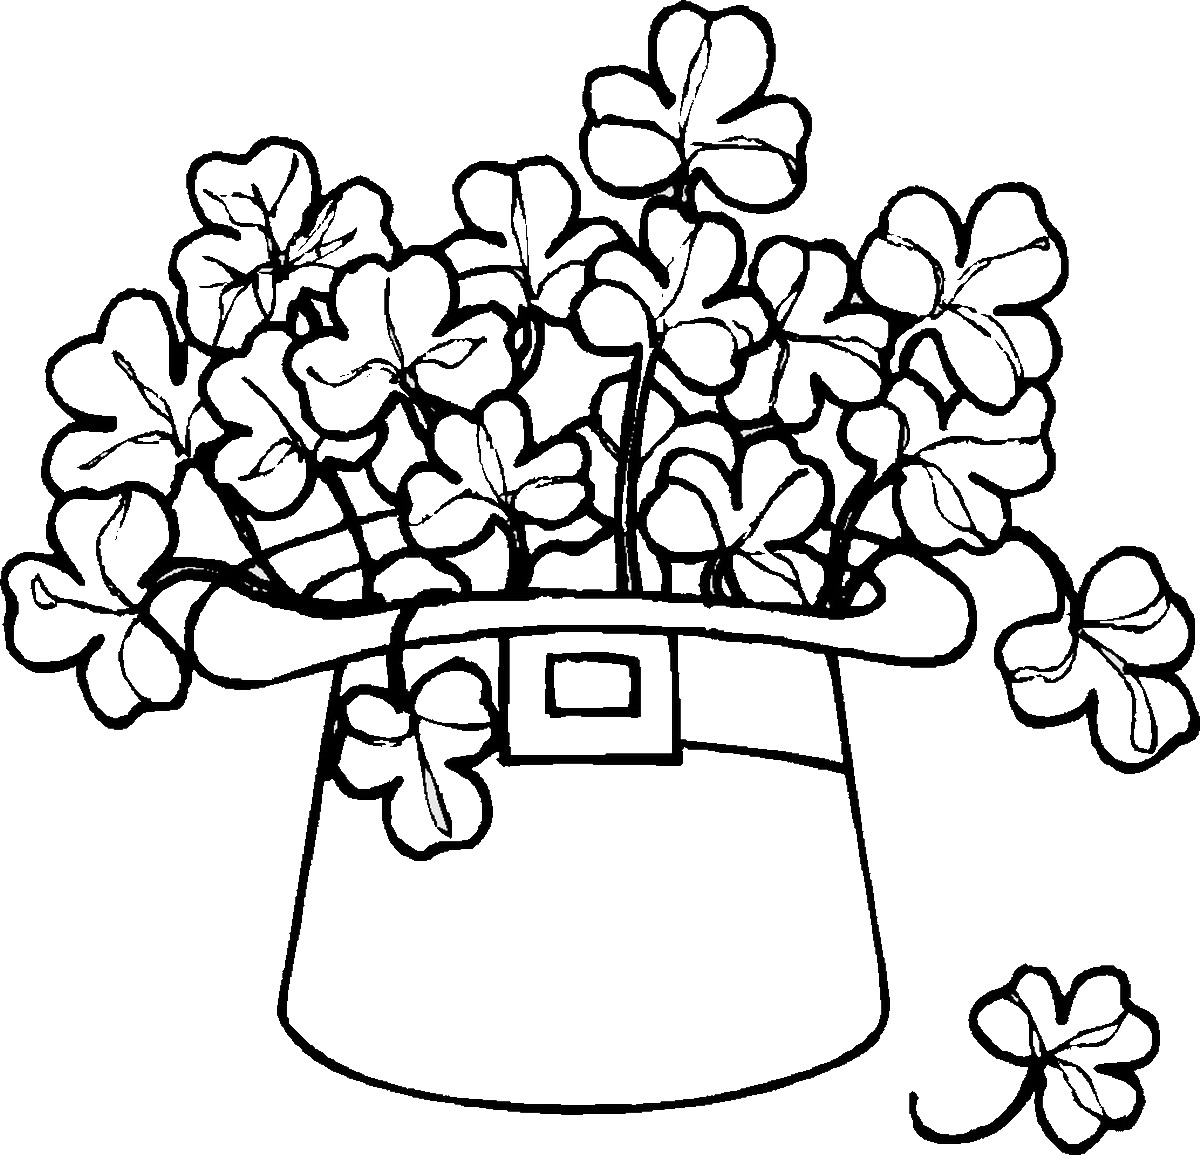 St Patrick 39 s Day Coloring Pages for childrens printable